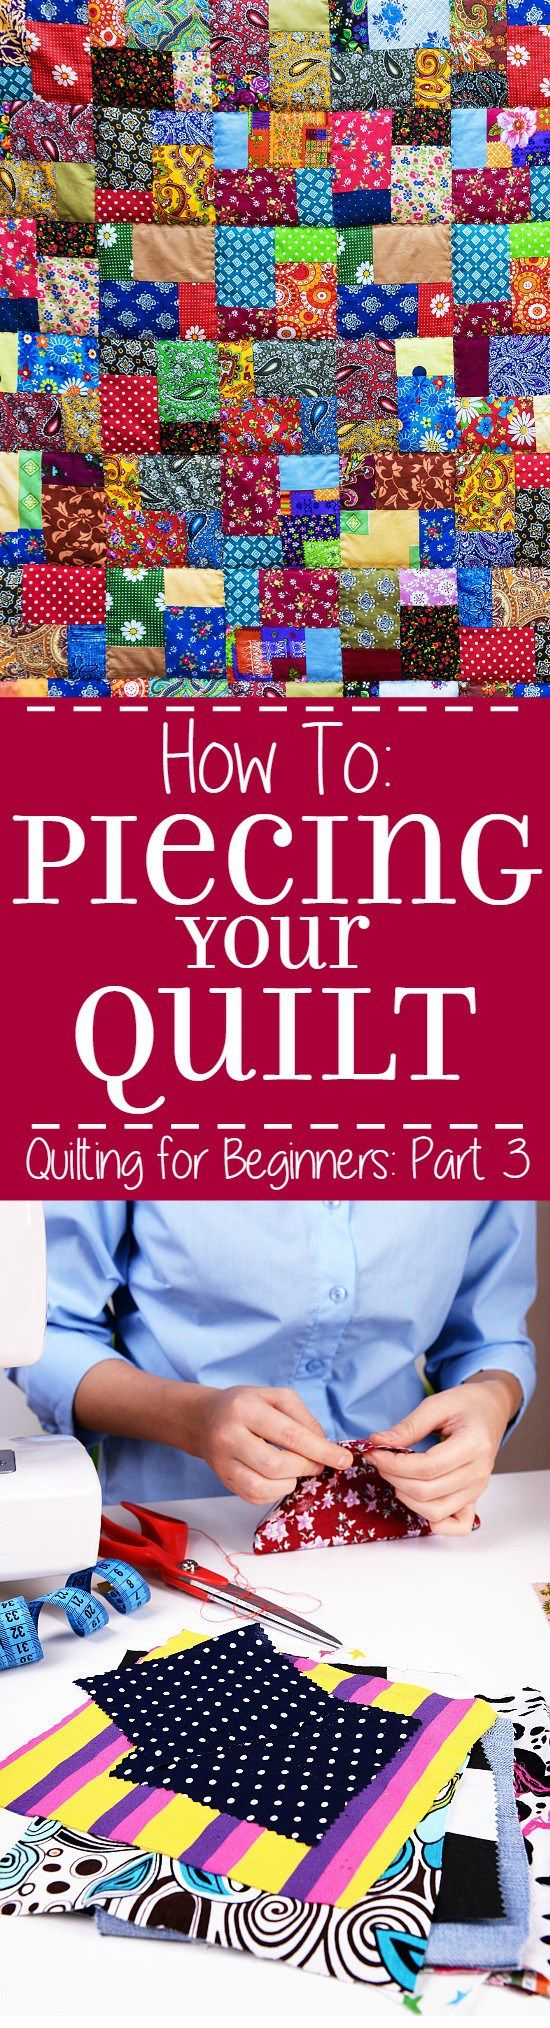 Piecing and Finishing Your Quilt Top - Part 3 in a 5-part Quilting for Beginners series.  This Piecing and Finishing Your Quilt Top section will walk you through piecing together your quilt top and sewing a perfect quarter inch seam.  Make your own DIY sewing quilt with this step-by-step tutorial!